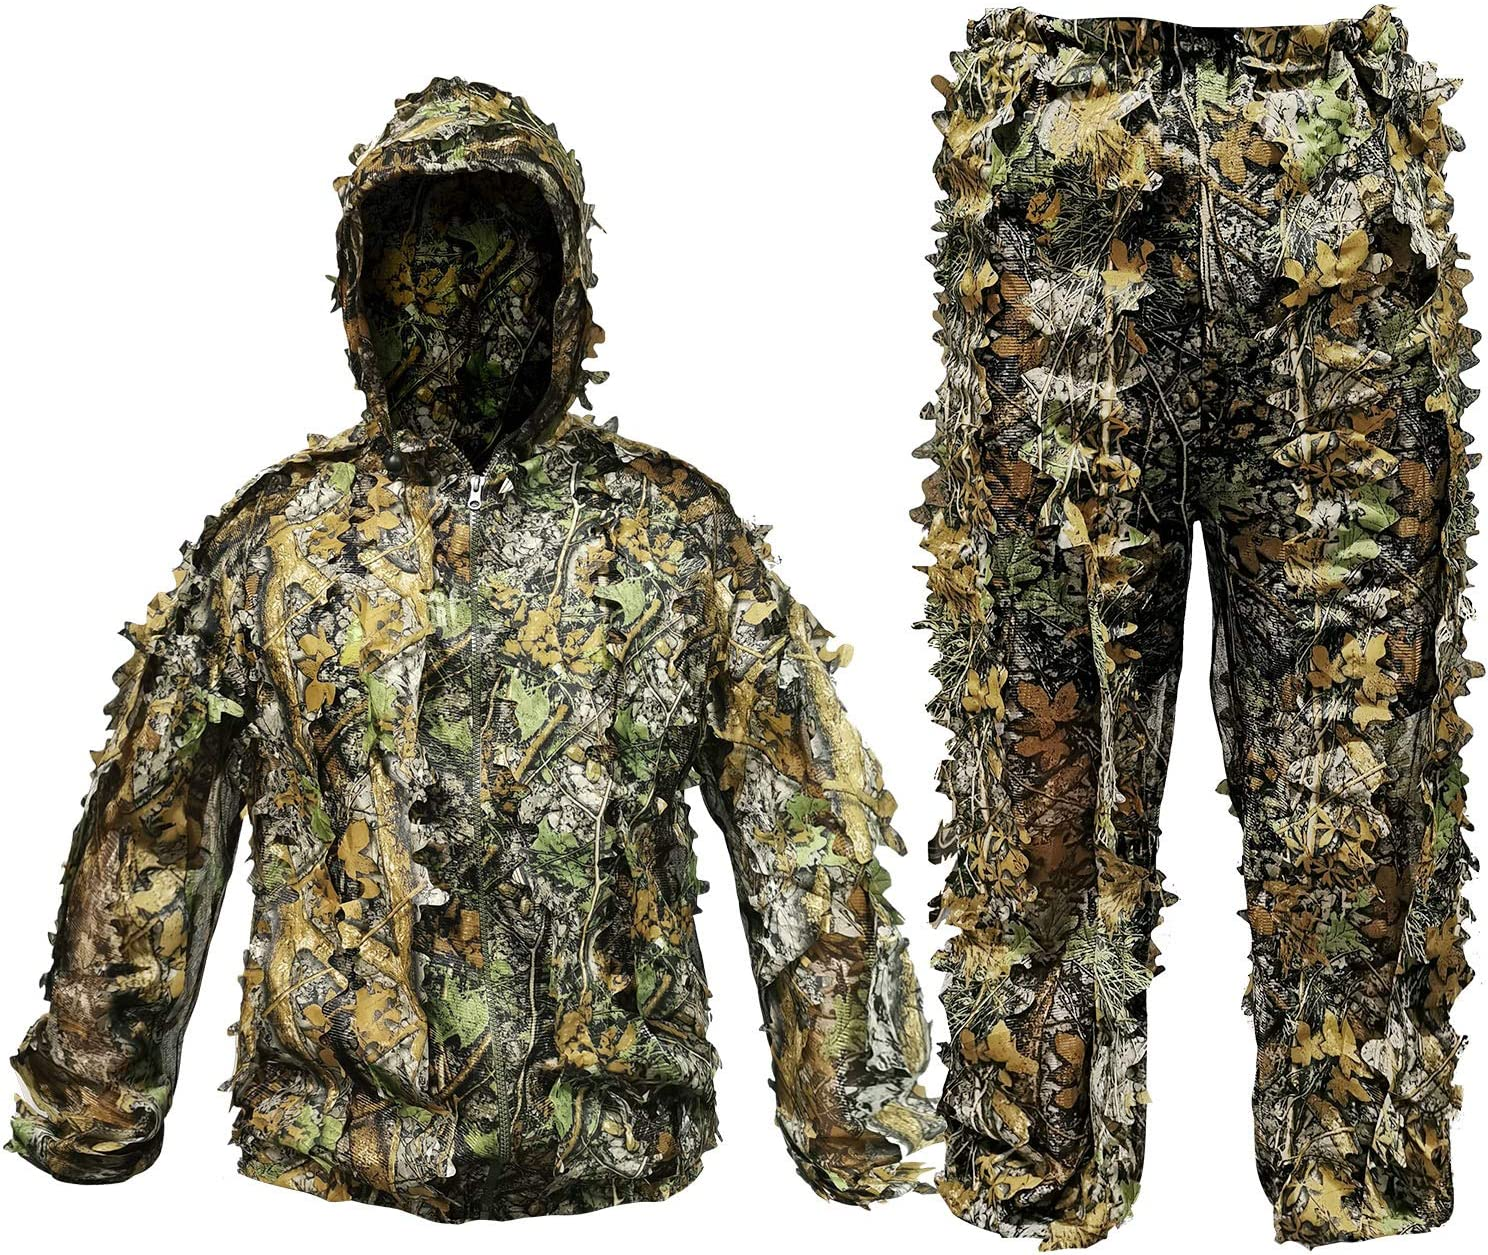 POWLIFE Ghillie Suit Camouflage Hunting Suits Outdoor 3D Leaf Lifelike Camo Clothing Lightweight Breathable Hooded Apparel Suit for Jungle Shooting Airsoft Woodland Photography : Clothing